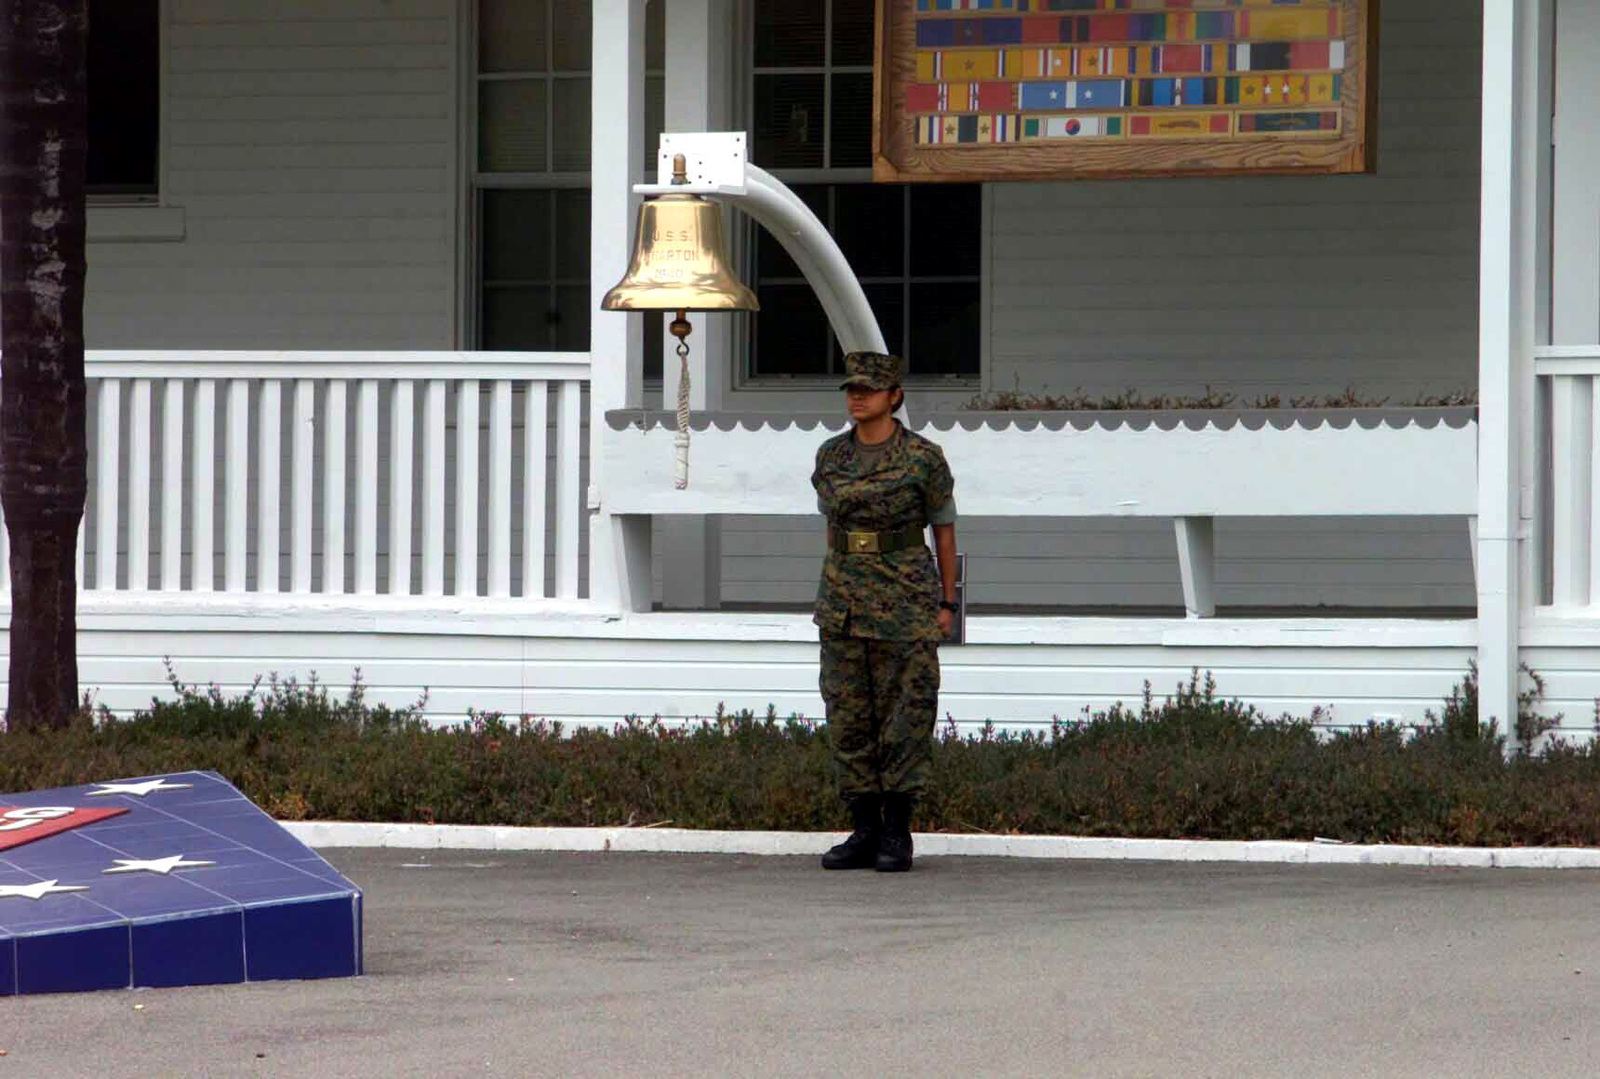 US Marine Corps (USMC) Marine Private First Class (PFC) Deosdady Andrade, Color Guard, 1ST Marine Division, Marine Corps Base (MCB) Camp Pendleton, California (CA), stands at the position of attention during morning colors at the 1ST Marine Division Headquarters